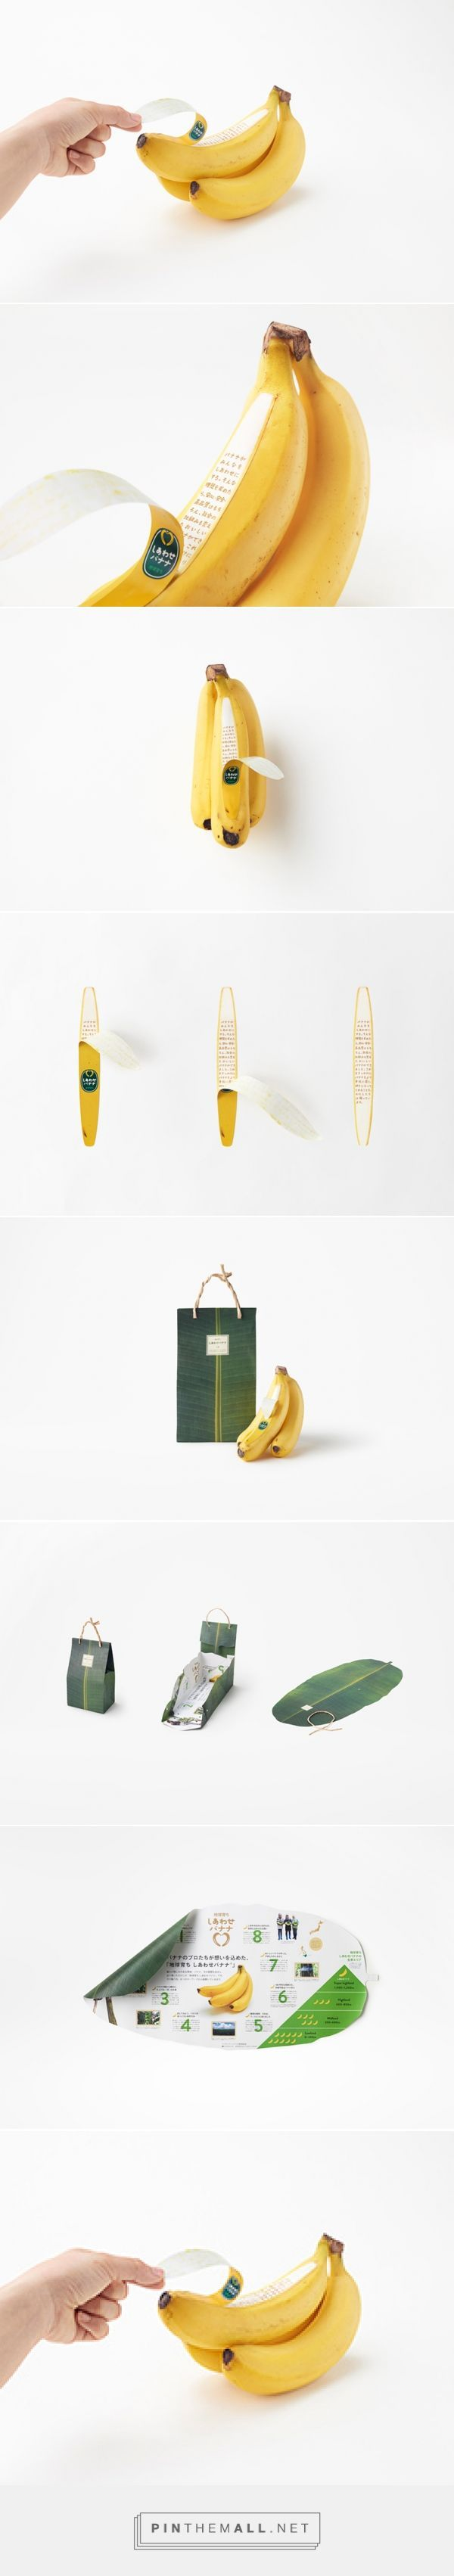 Nendo designs peelable package and label for shiawase bananas curated by Packaging Diva PD. I thought this was fake but it's a real packaging design.: